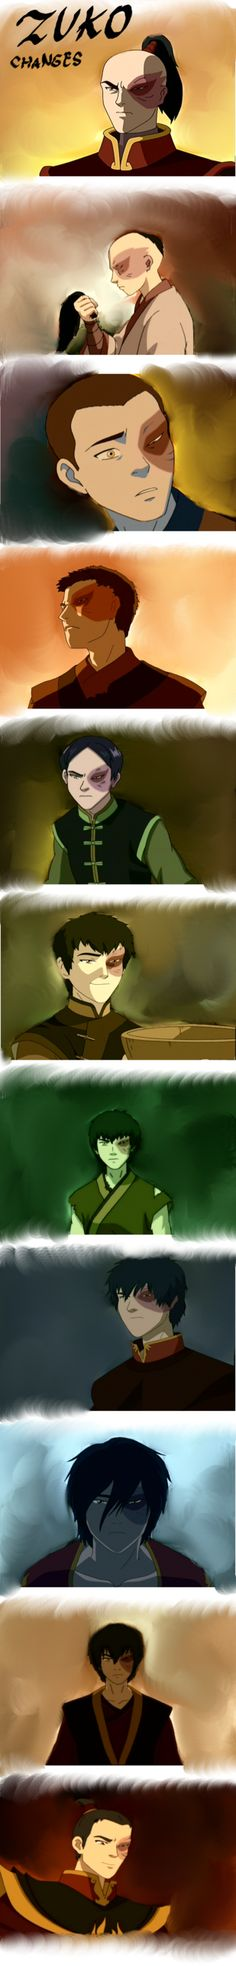 Zuko: Changes by coincidense